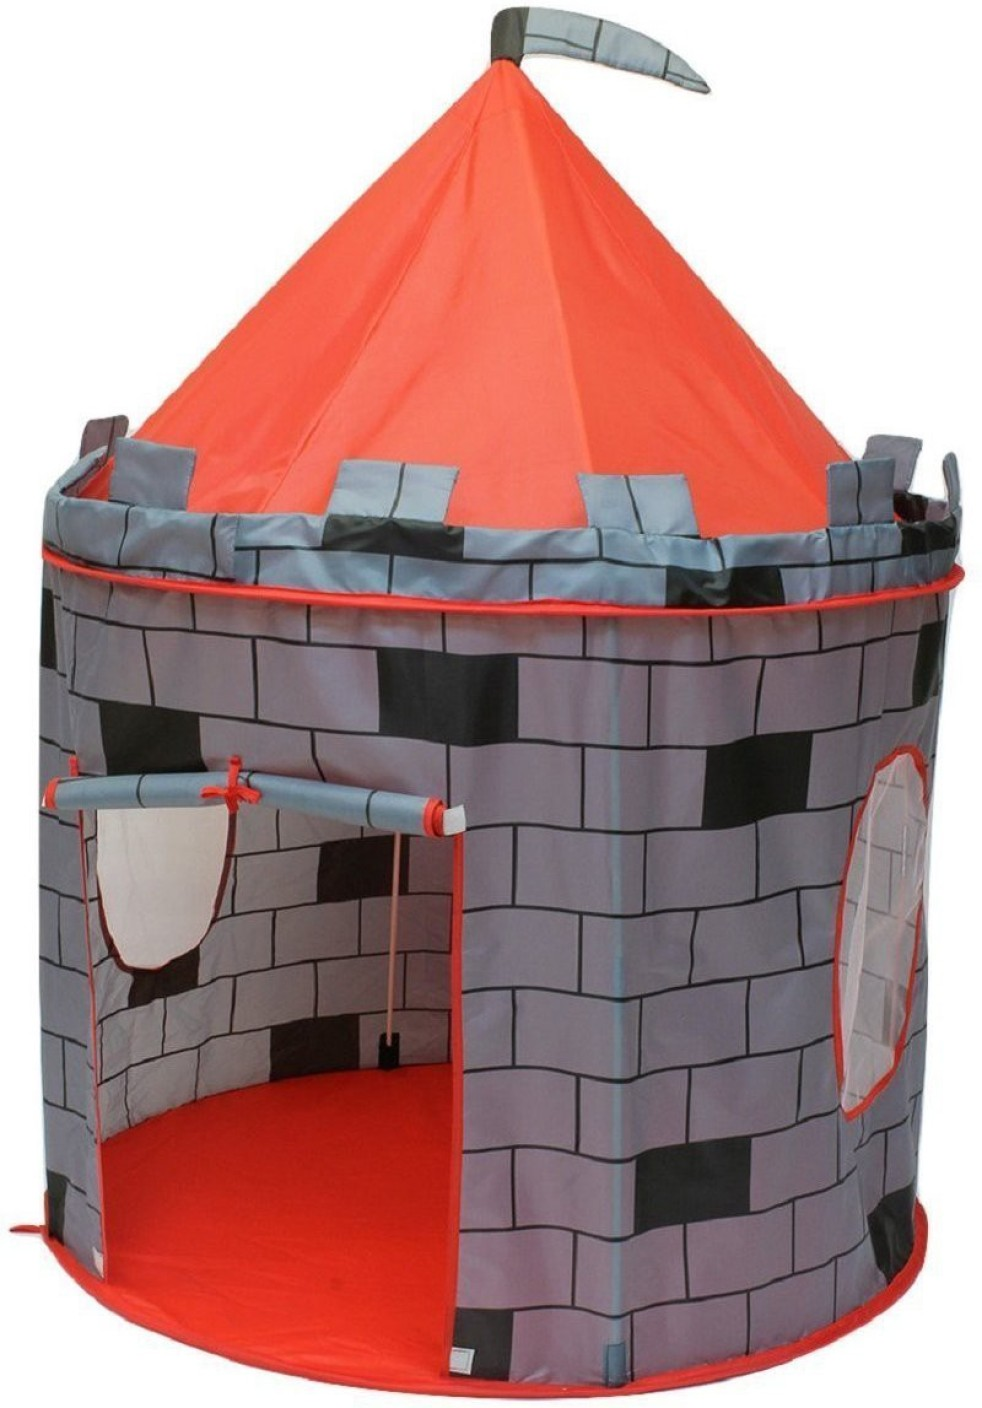 pigloo cubby house tent play house for kids cubby house tent